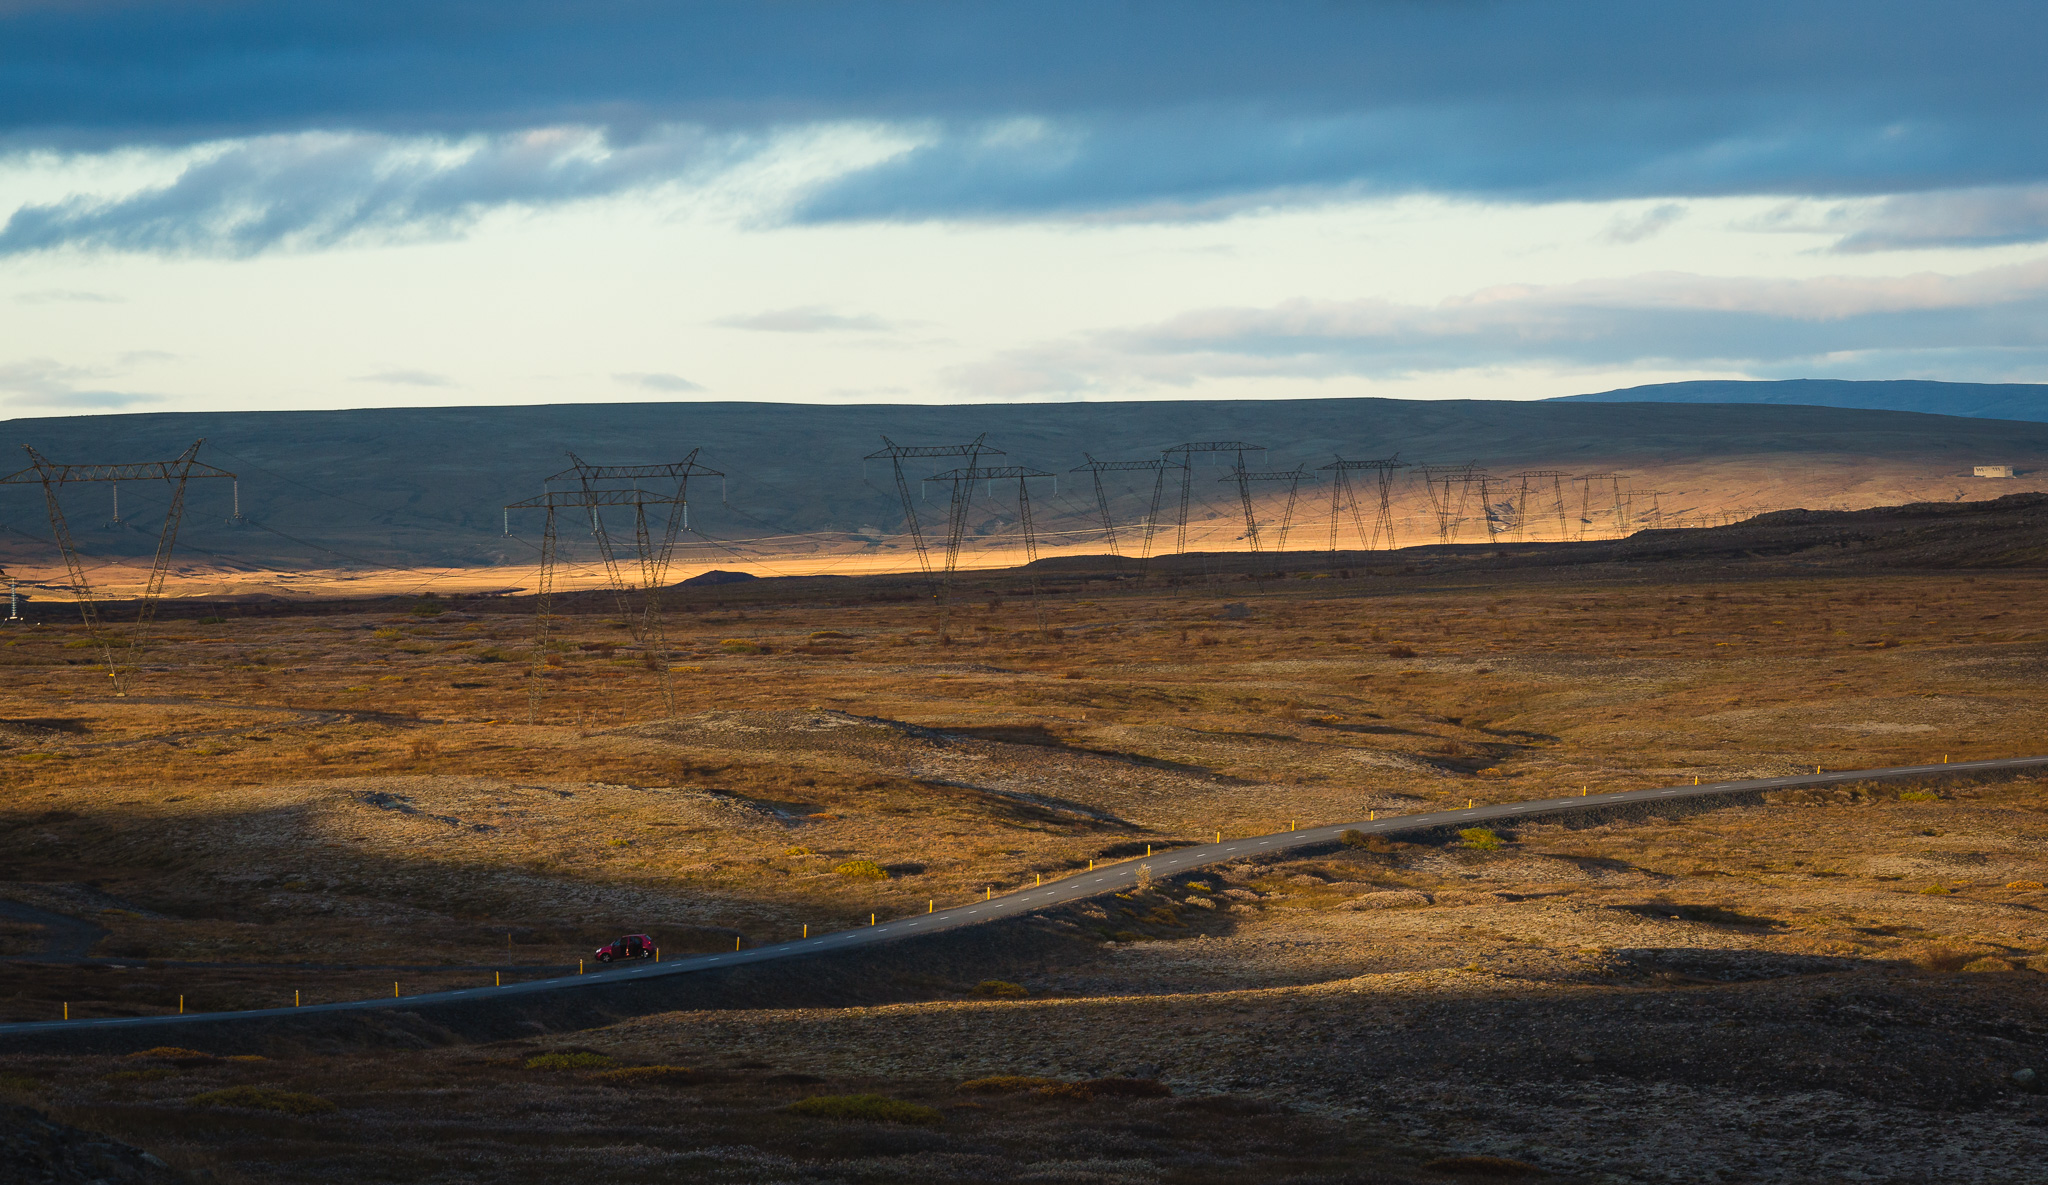 Roads and electric poles in Iceland picture